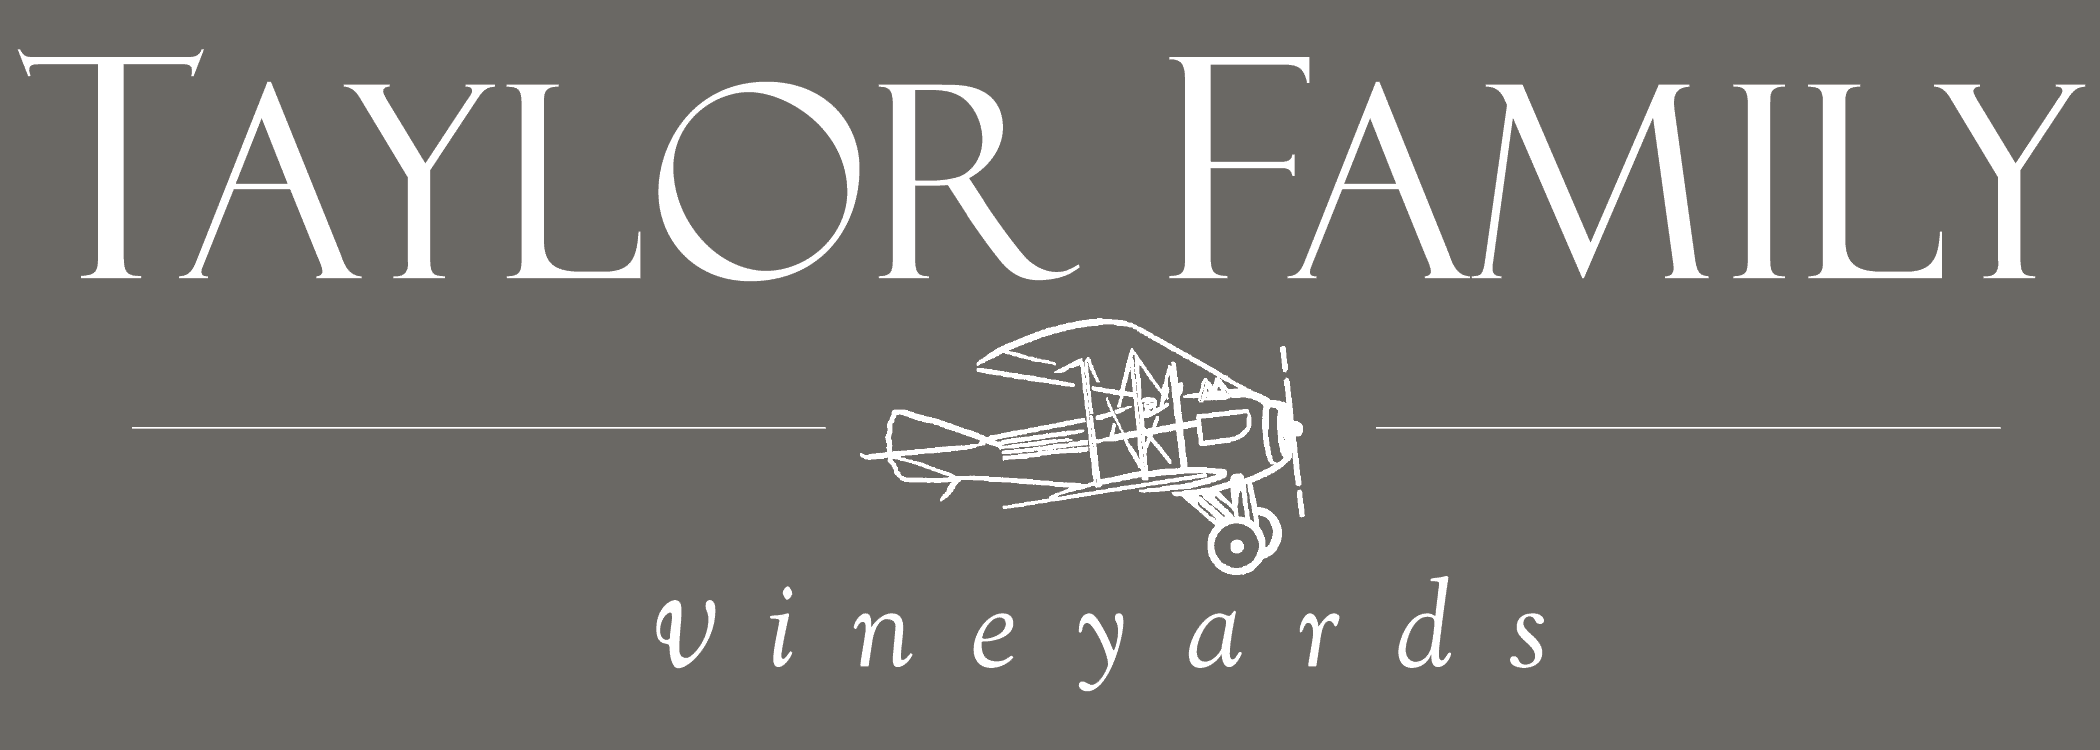 Taylor Family Vineyards | Napa Valley, California Logo